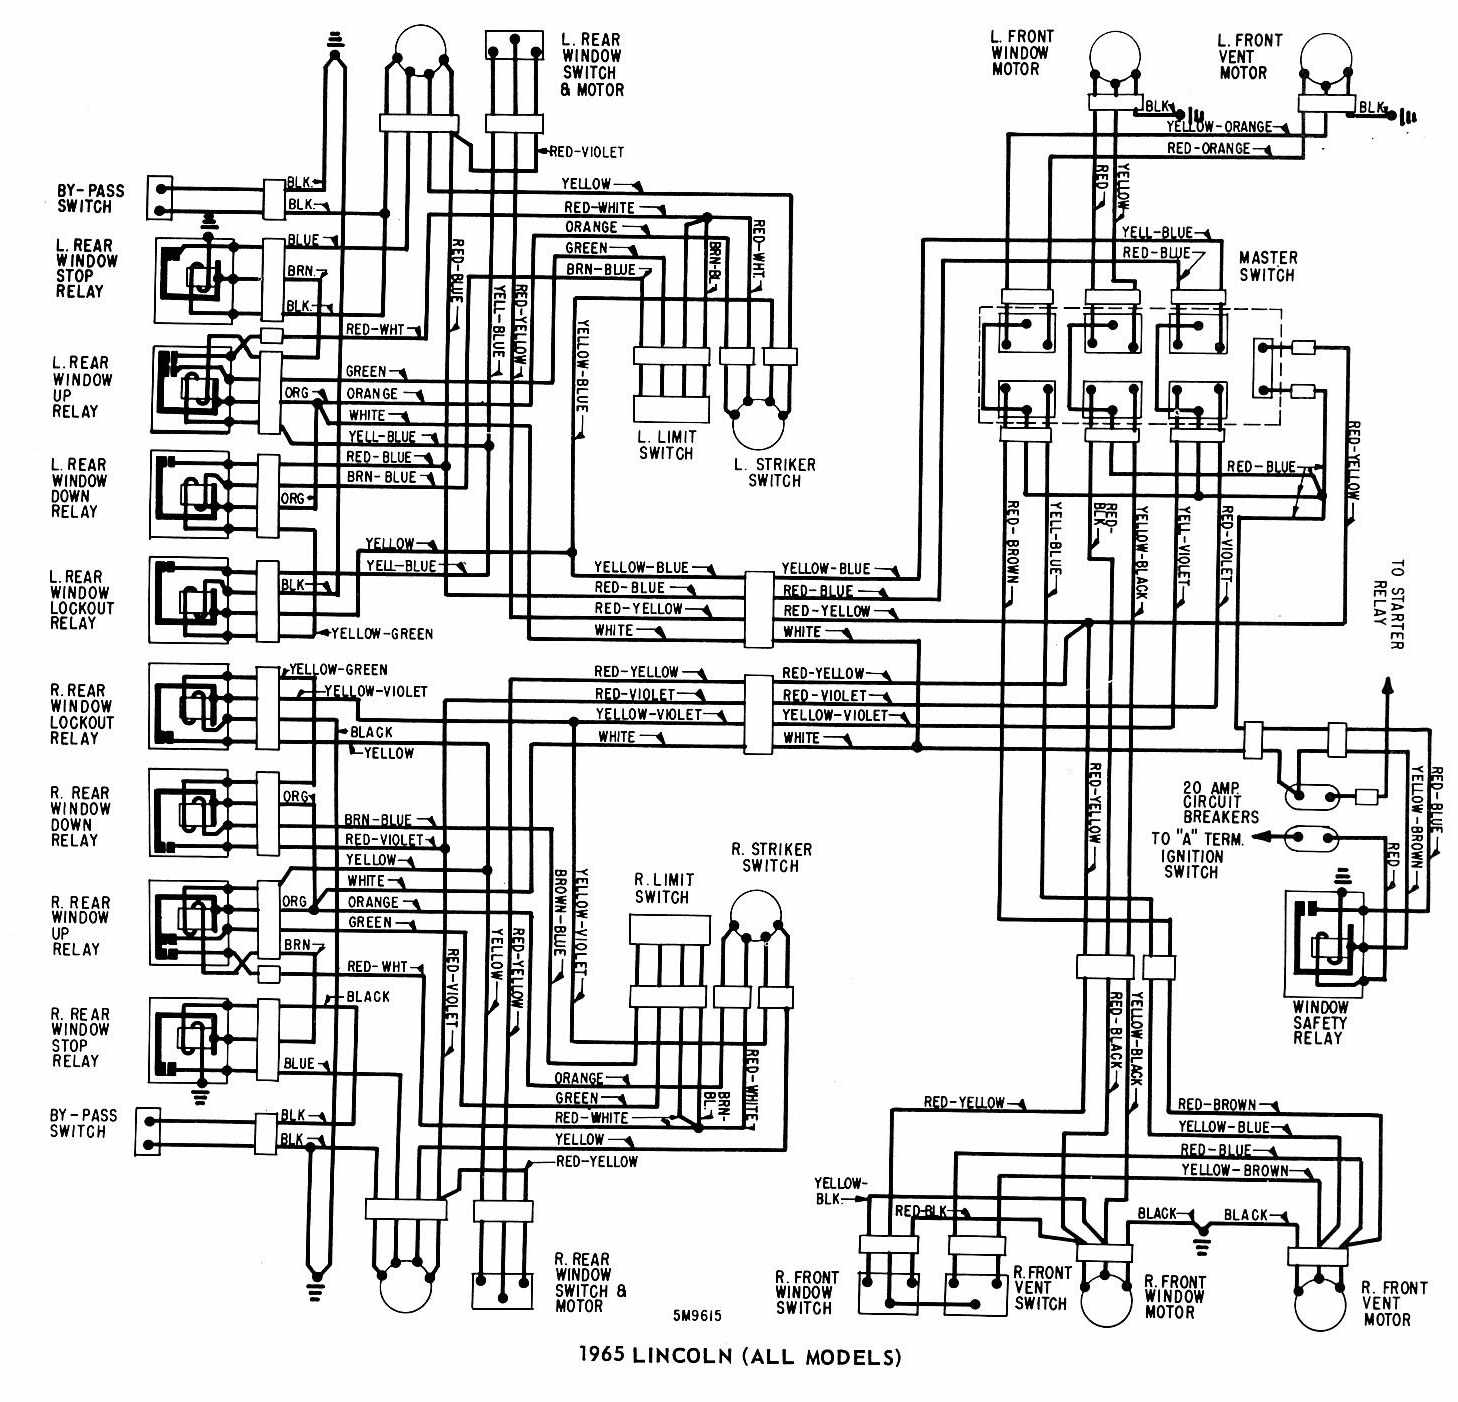 hight resolution of 1971 lincoln wiring diagram wiring diagrams lincoln continental engine diagram 1976 lincoln continental wiring diagrams wiring